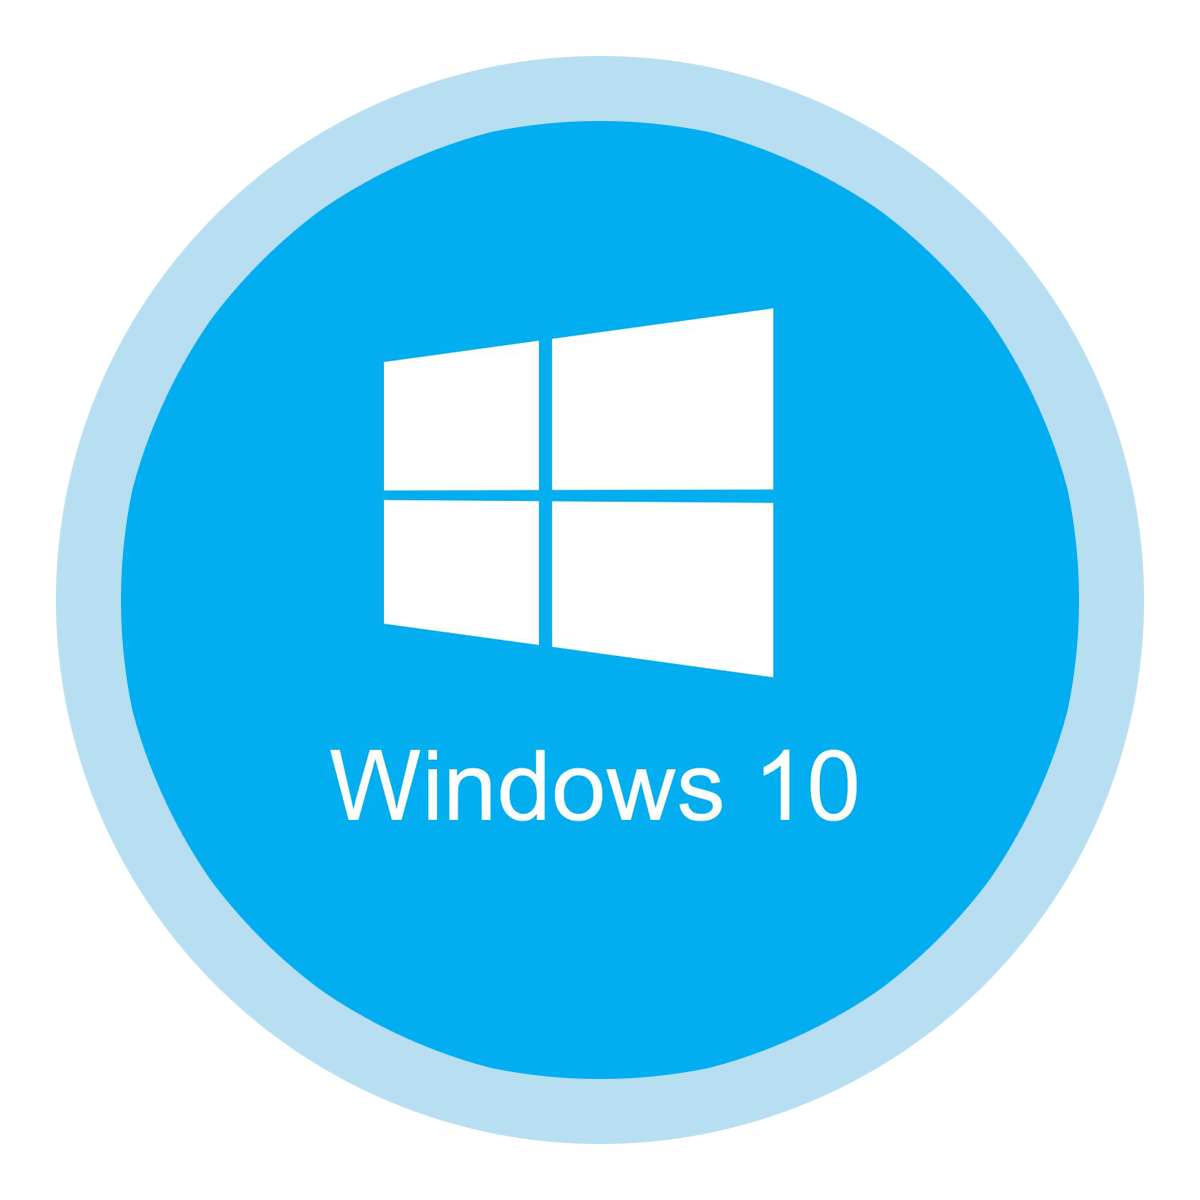 kisspng-windows-10-microsoft-windows-operating-system-wind-windows-png-free-download-png-image-5a78cd1b8c30f3.7253218415178662675742